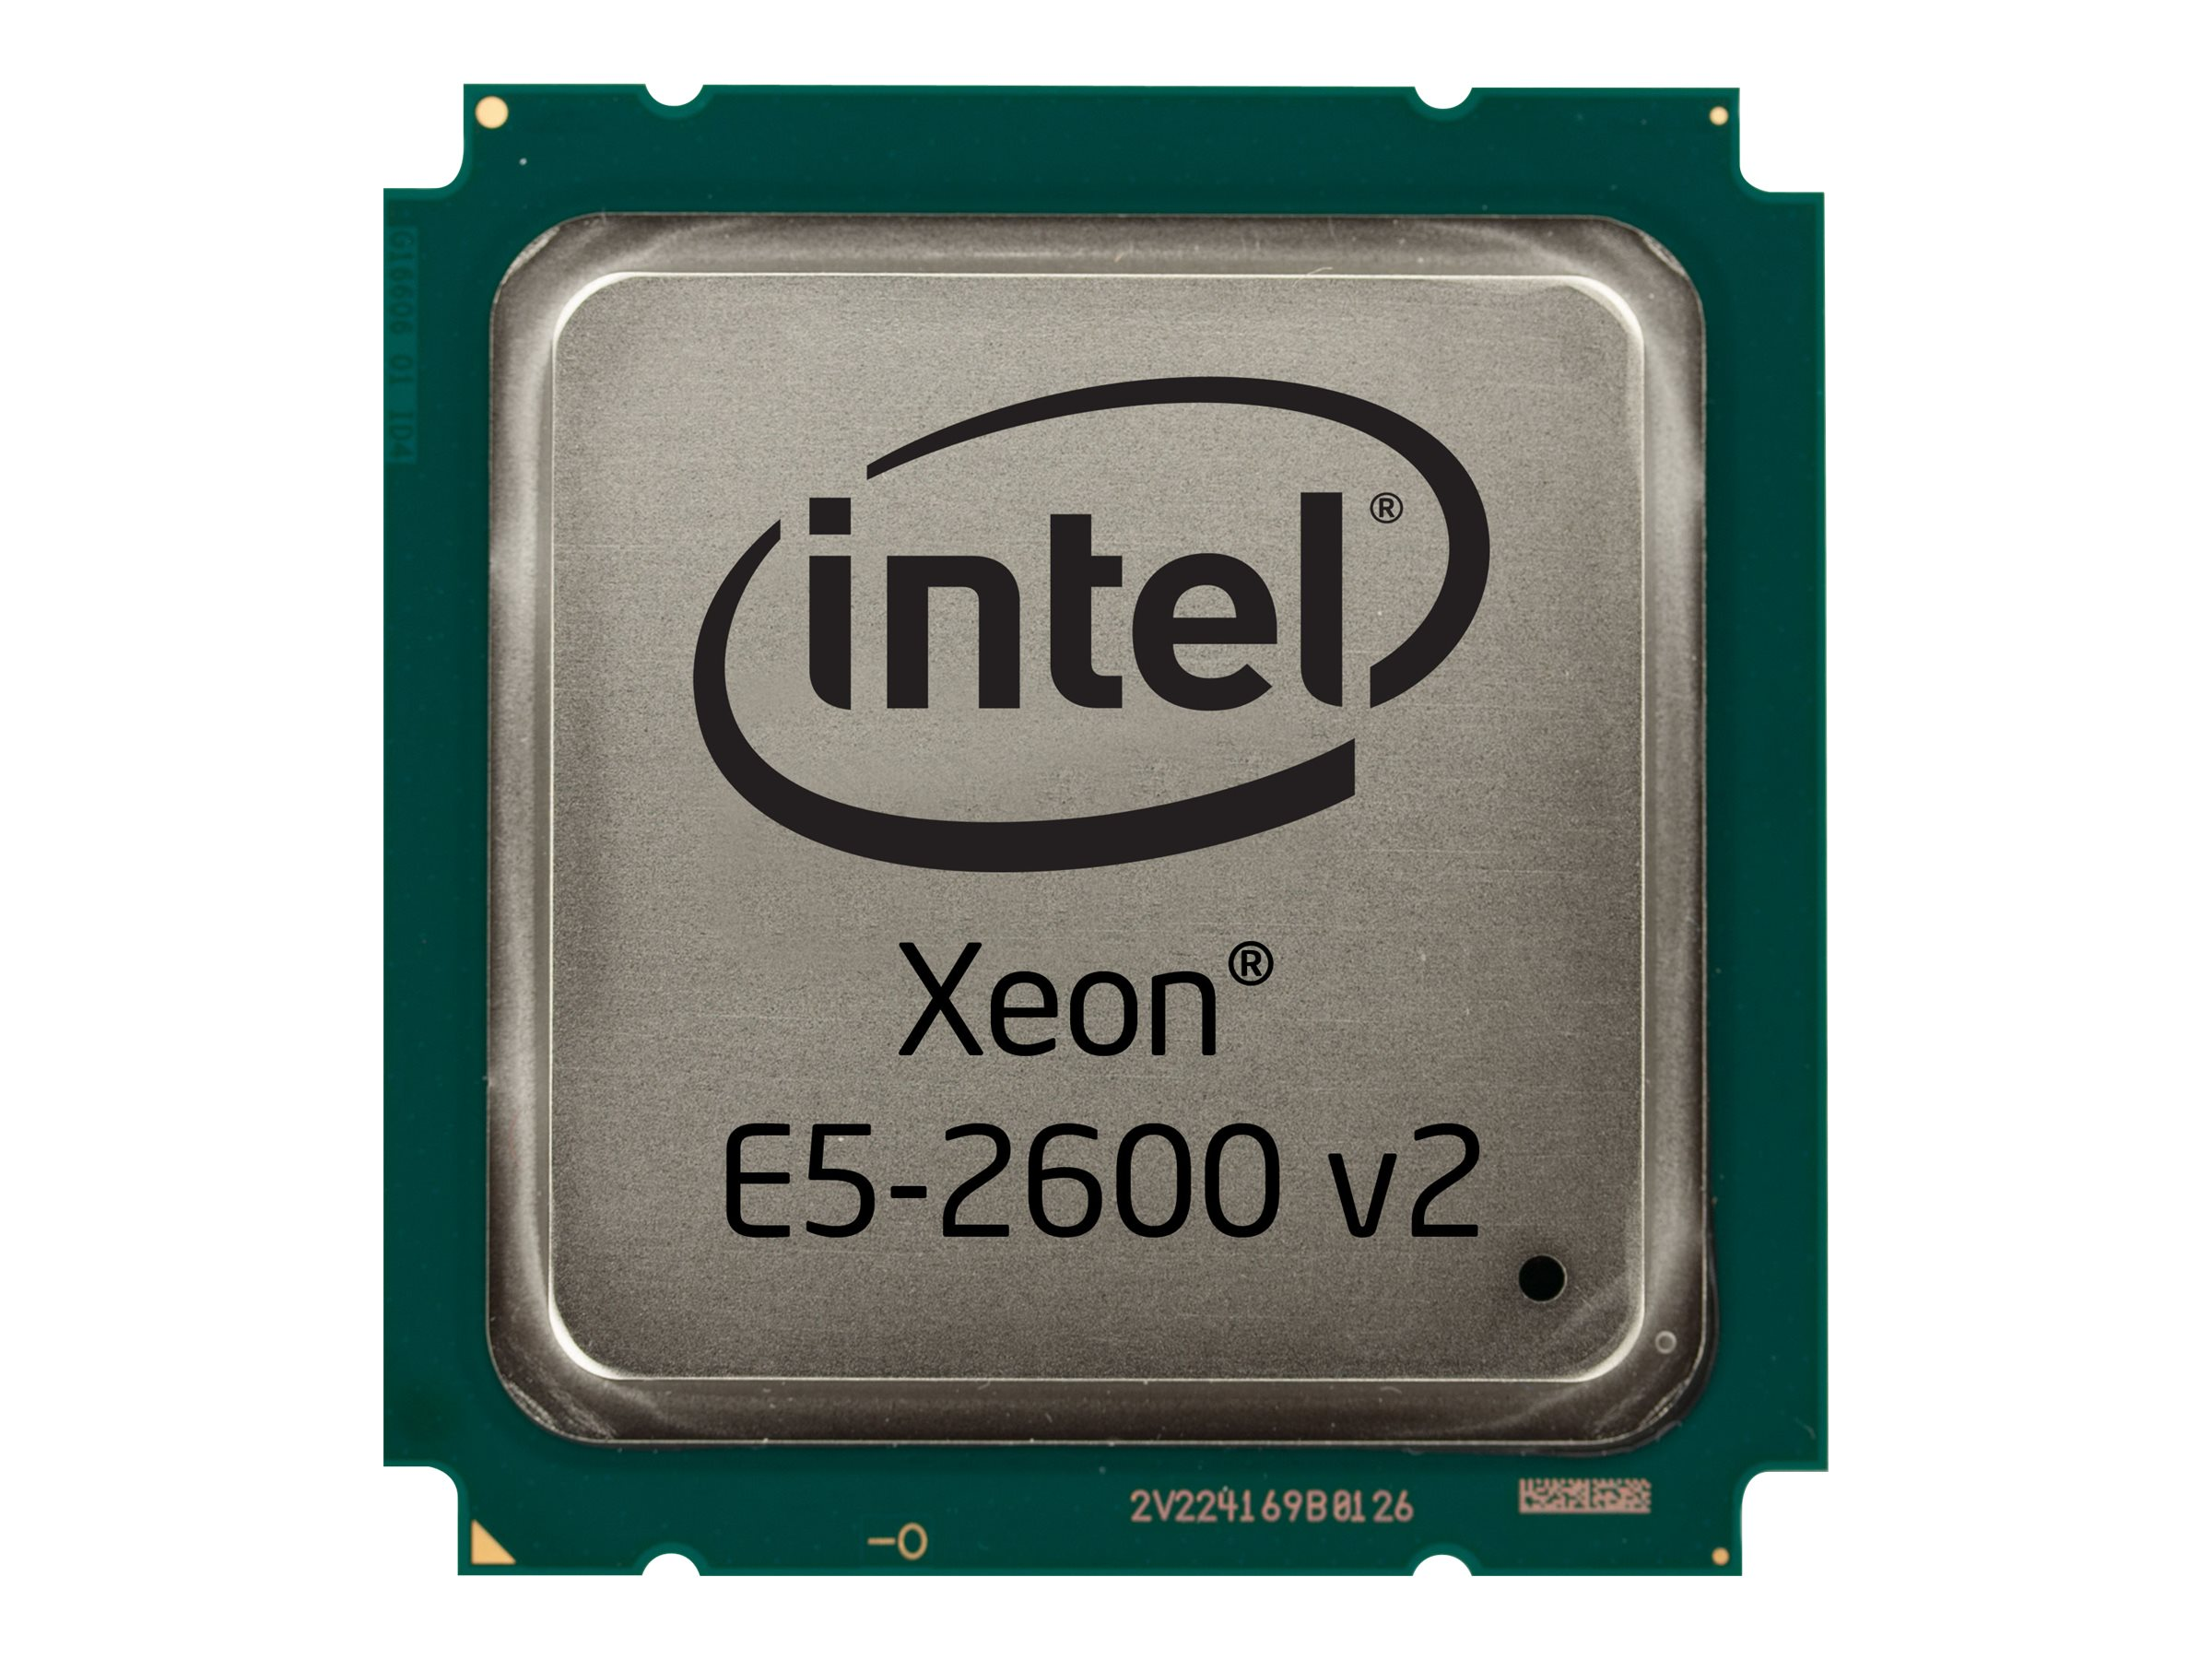 Intel Processor, Xeon QC E5-2609 v2 2.5GHz 10MB 80W, Box, BX80635E52609V2